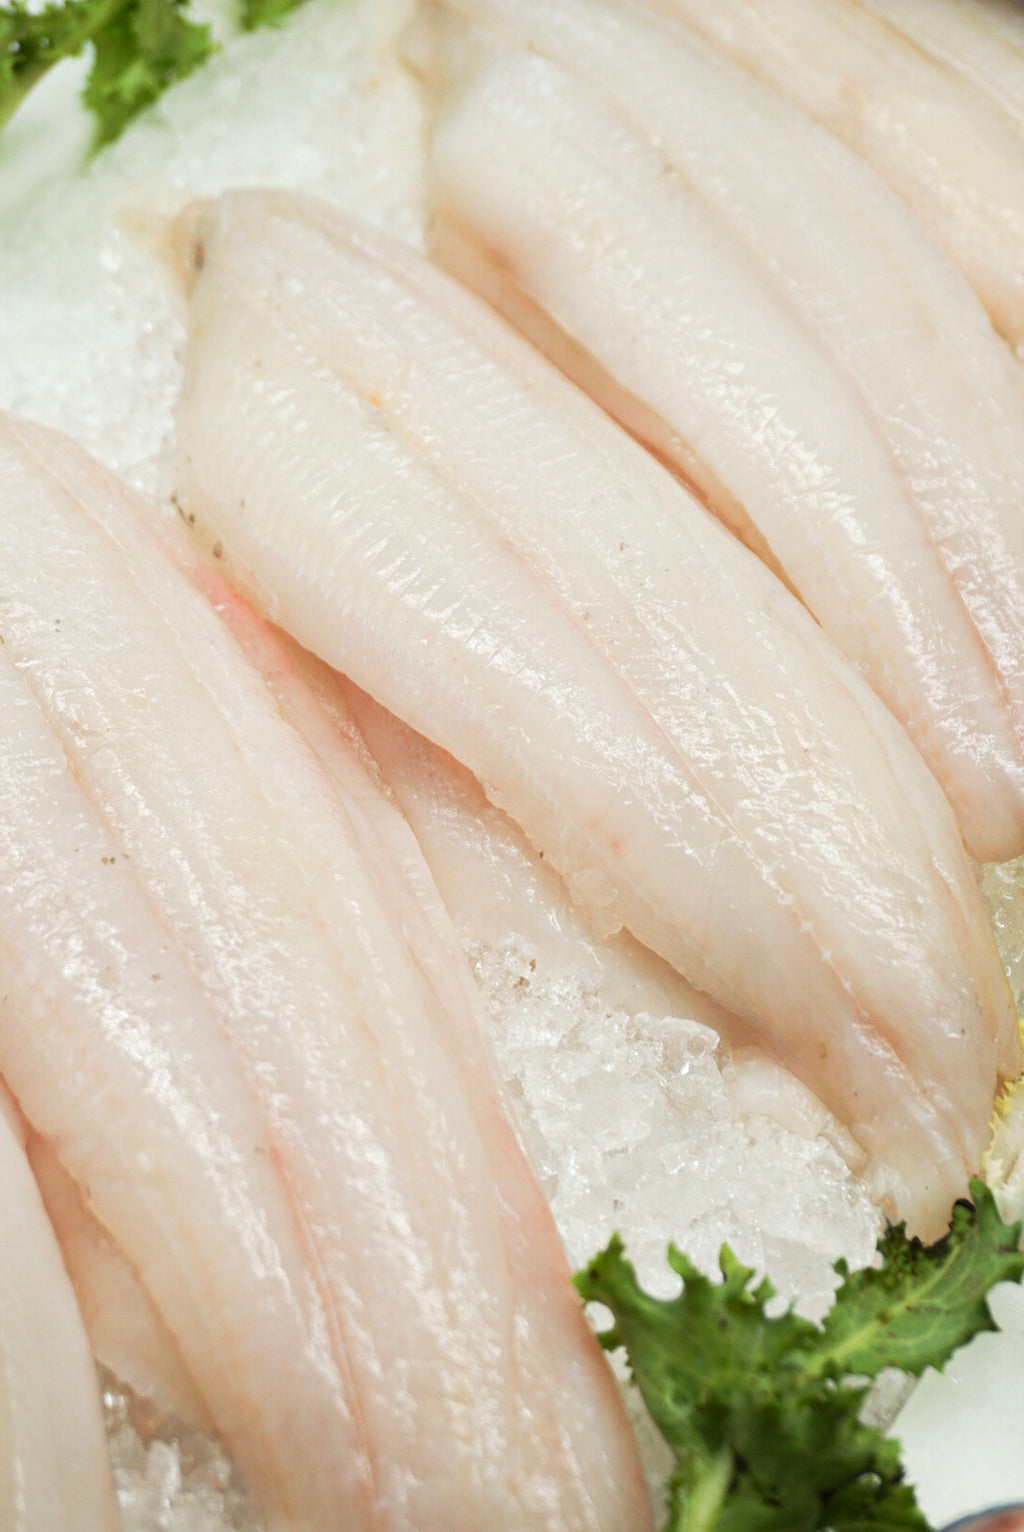 Grey Sole Fillet - Park Slope